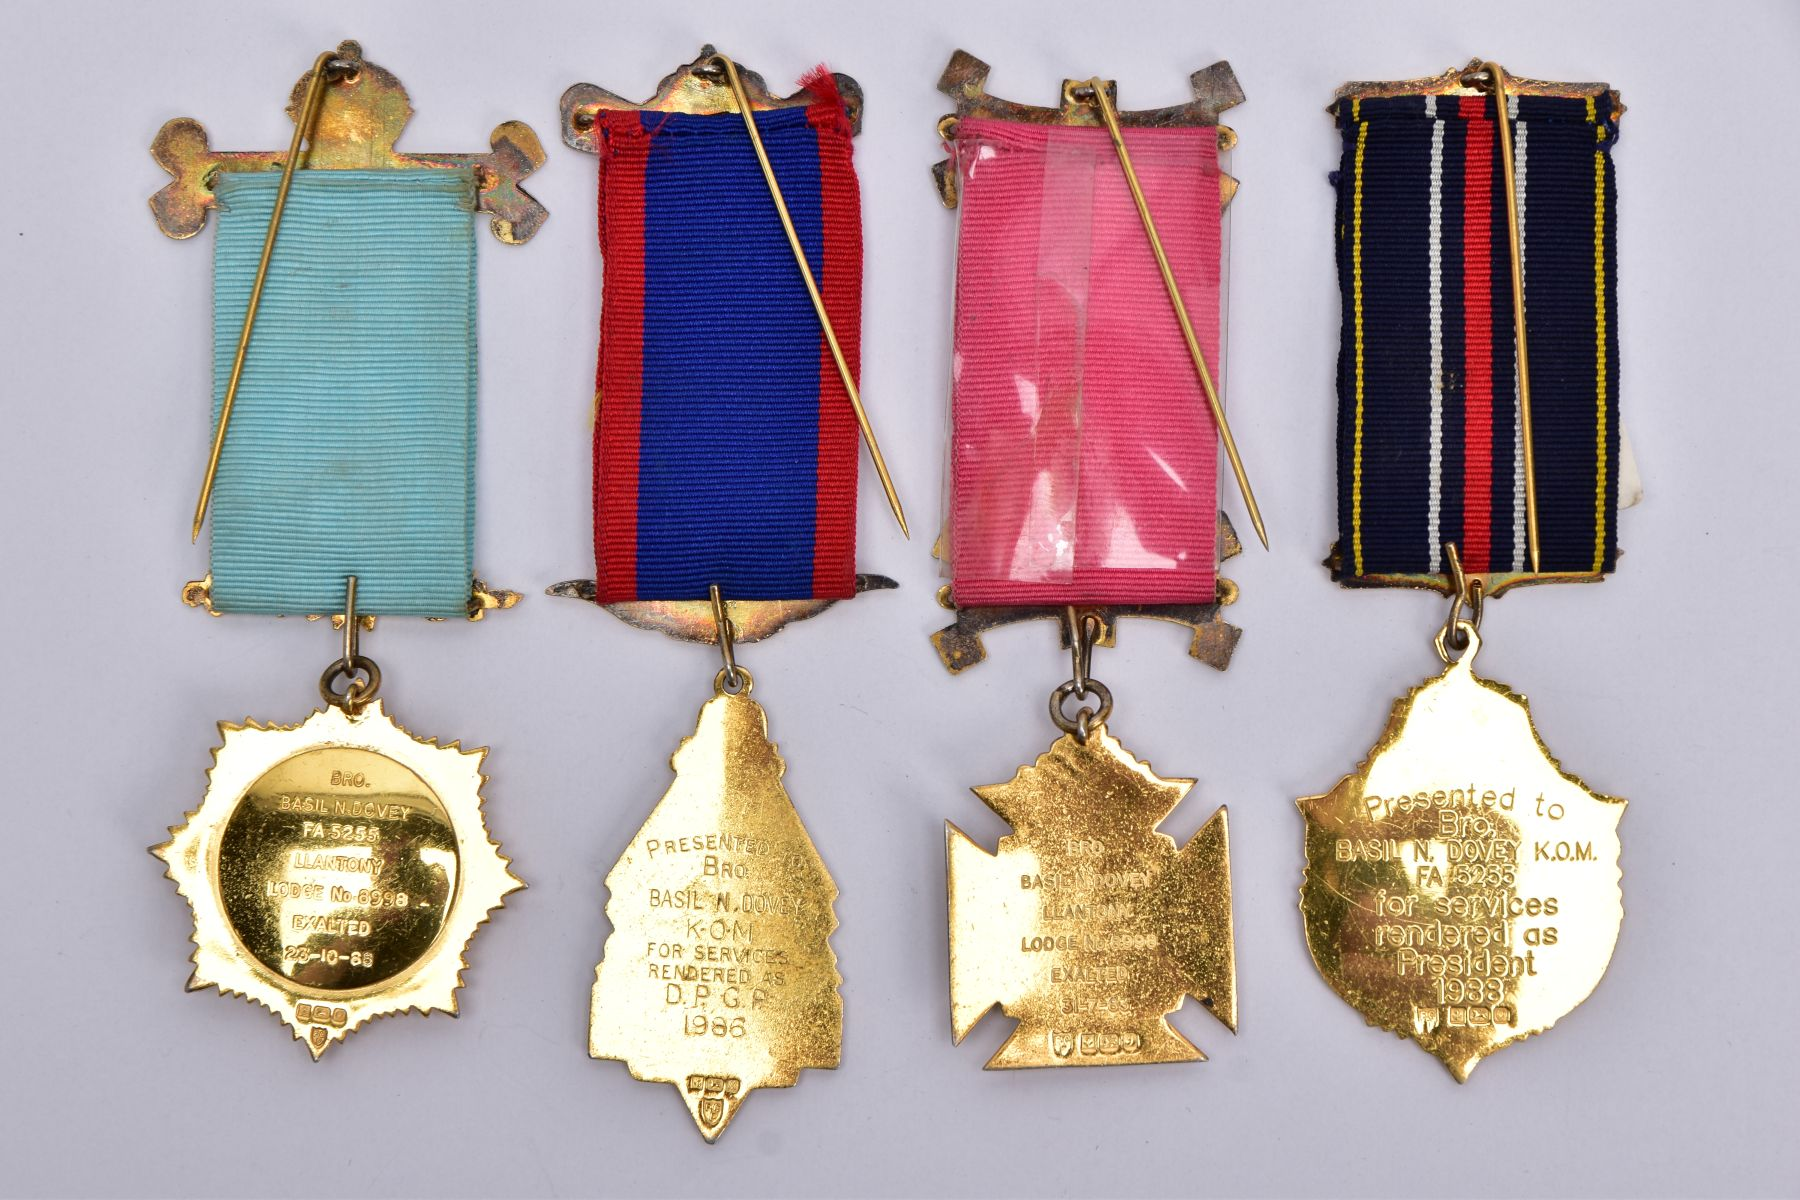 FOUR SILVER GILT, MASONIC MEDALS, of various designs decorated with blue, red, green and white - Image 2 of 2